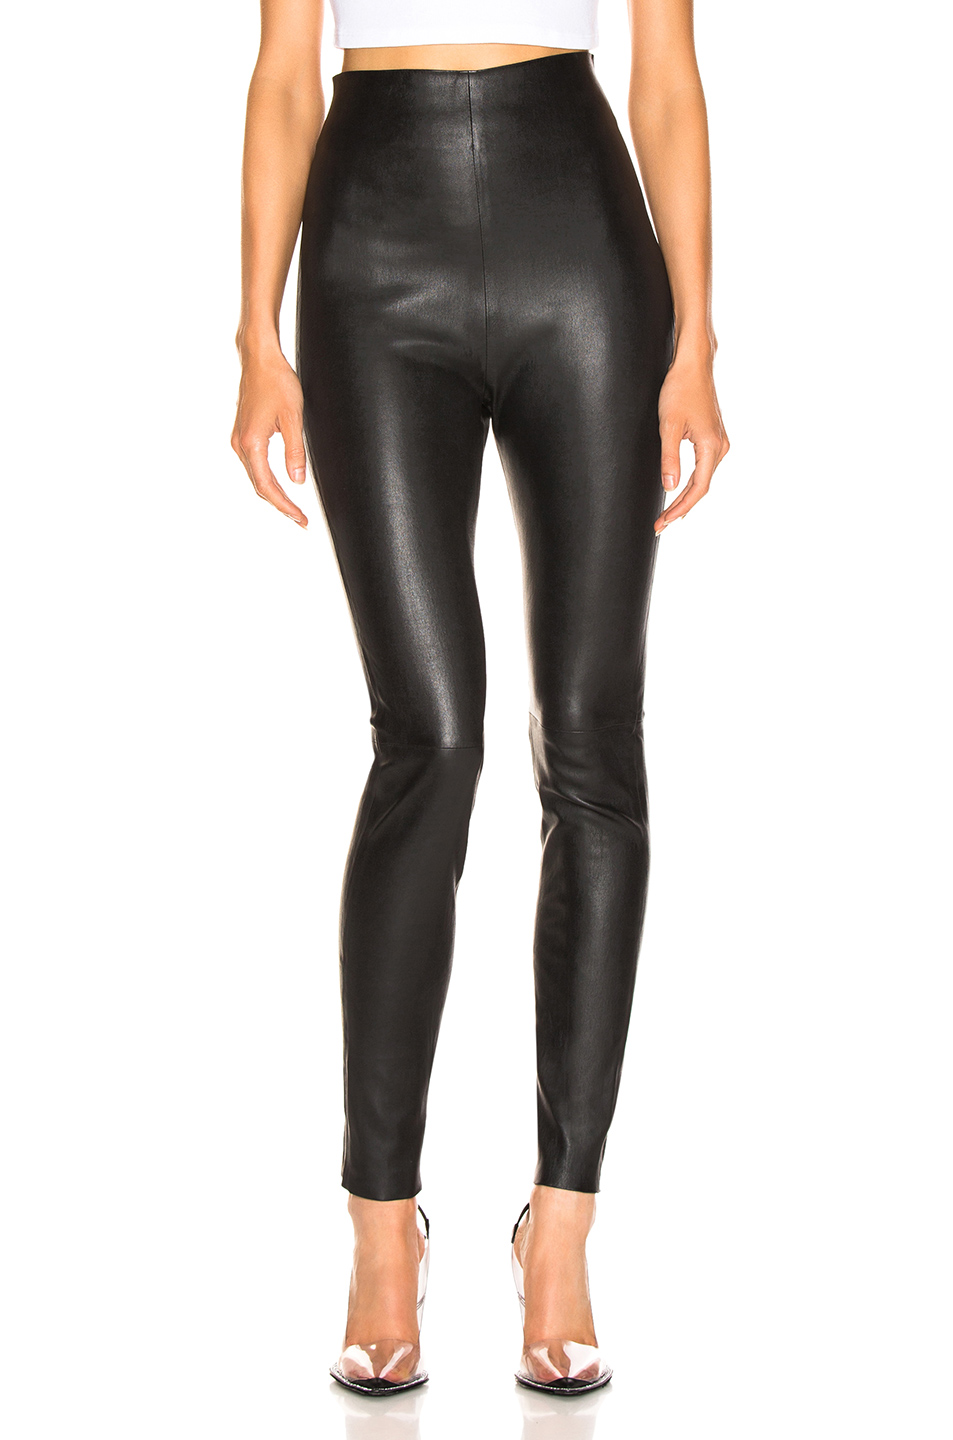 Jessica Pants by Sablyn, available on fwrd.com for $1500 Kim Kardashian Pants Exact Product